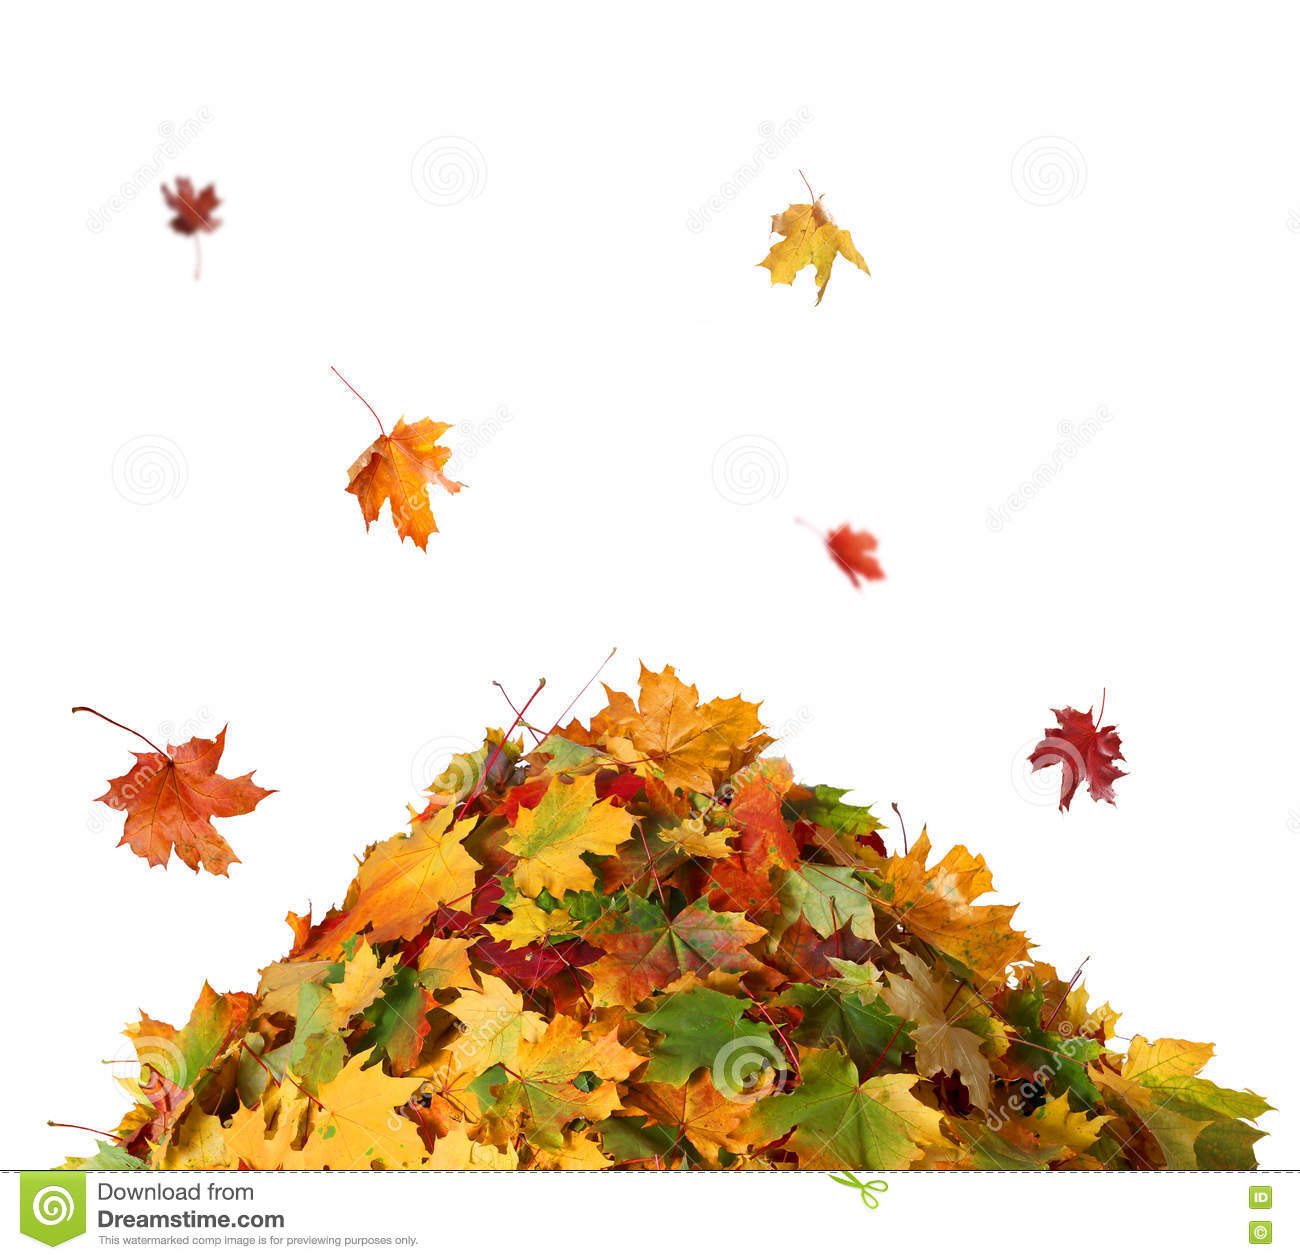 Pile of autumn colored leaves isolated on white background.